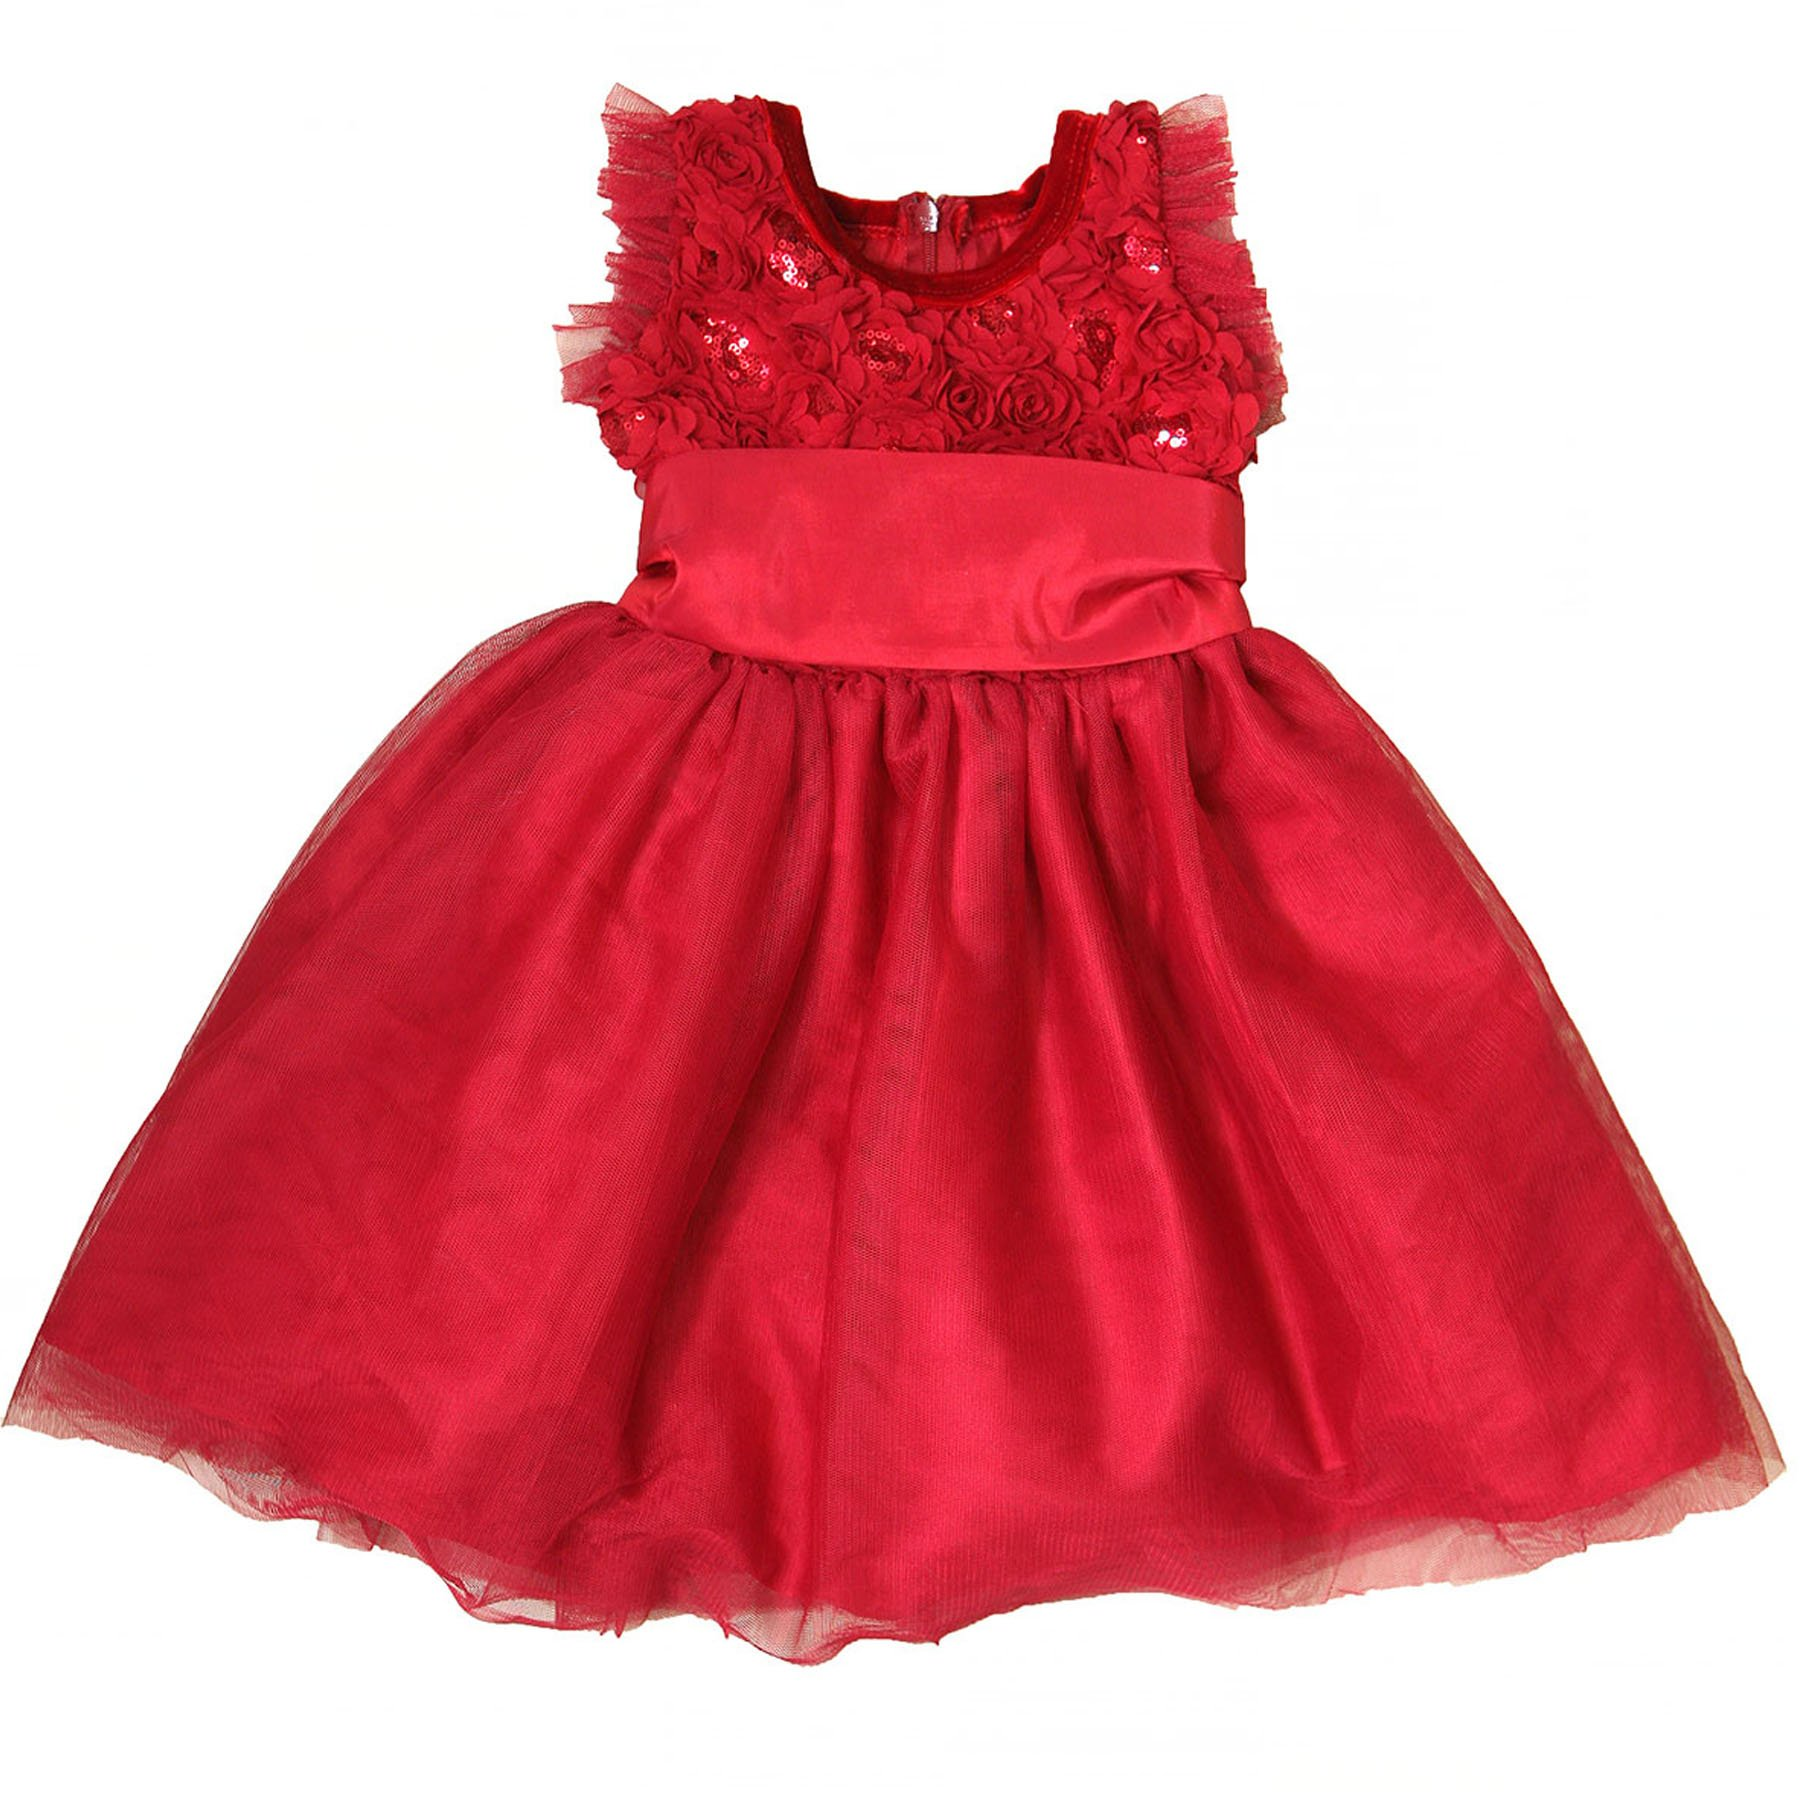 Holiday Toddler Dresses 72